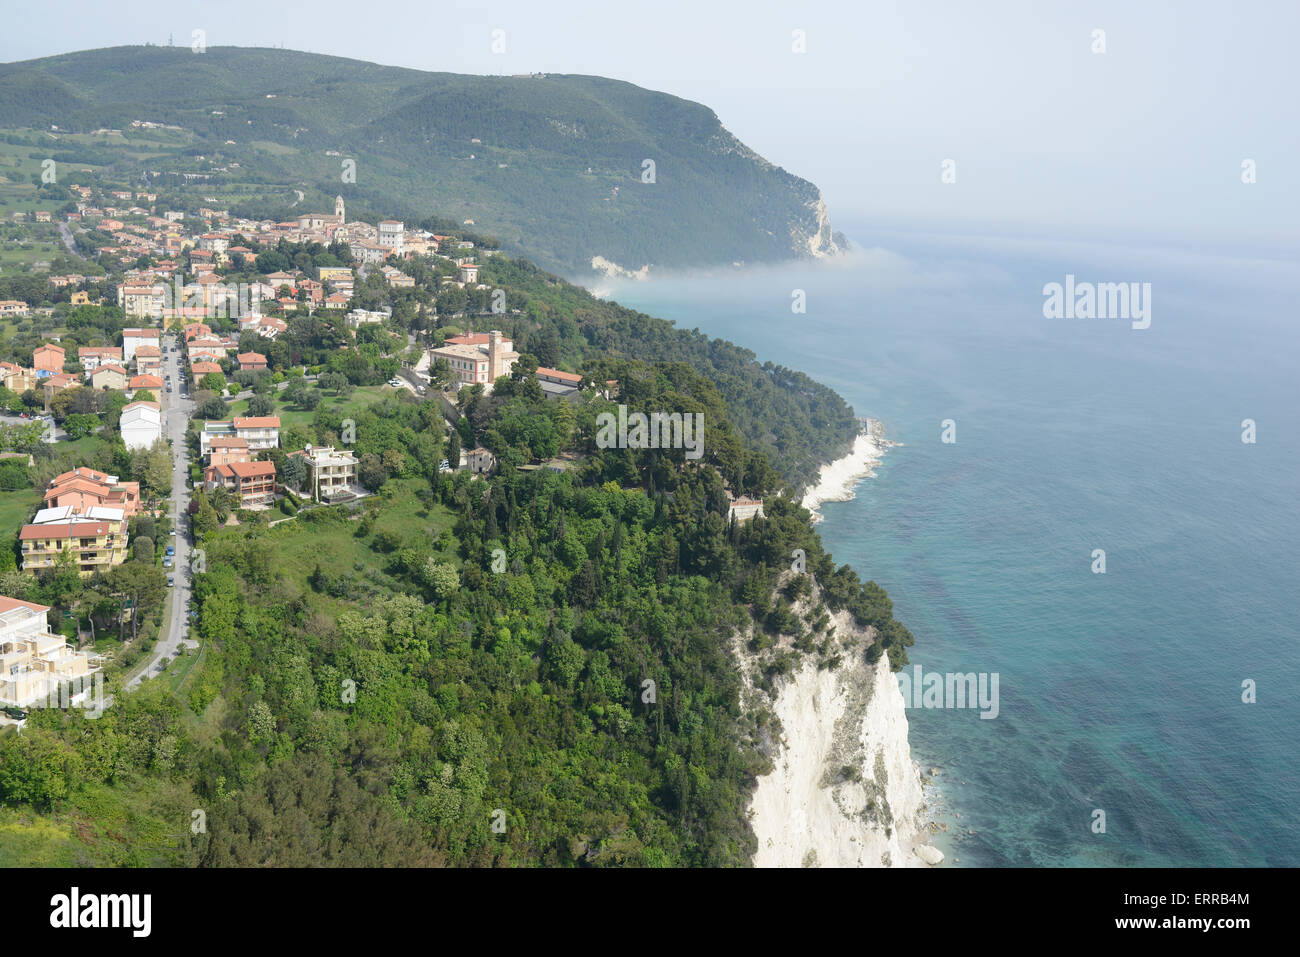 VILLAGE OVERLOOKING THE ADRIATIC SEA (aerial view). Sirolo, Marche, Italy. - Stock Image